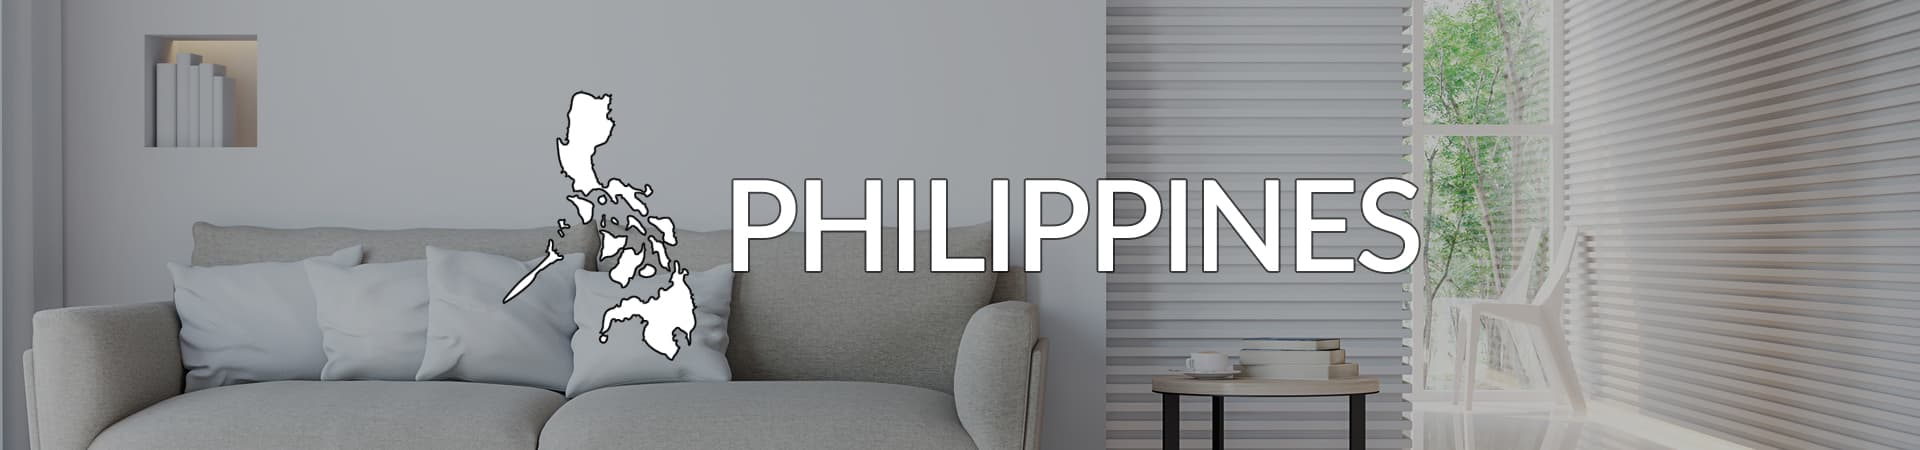 Housing in Philippines banner